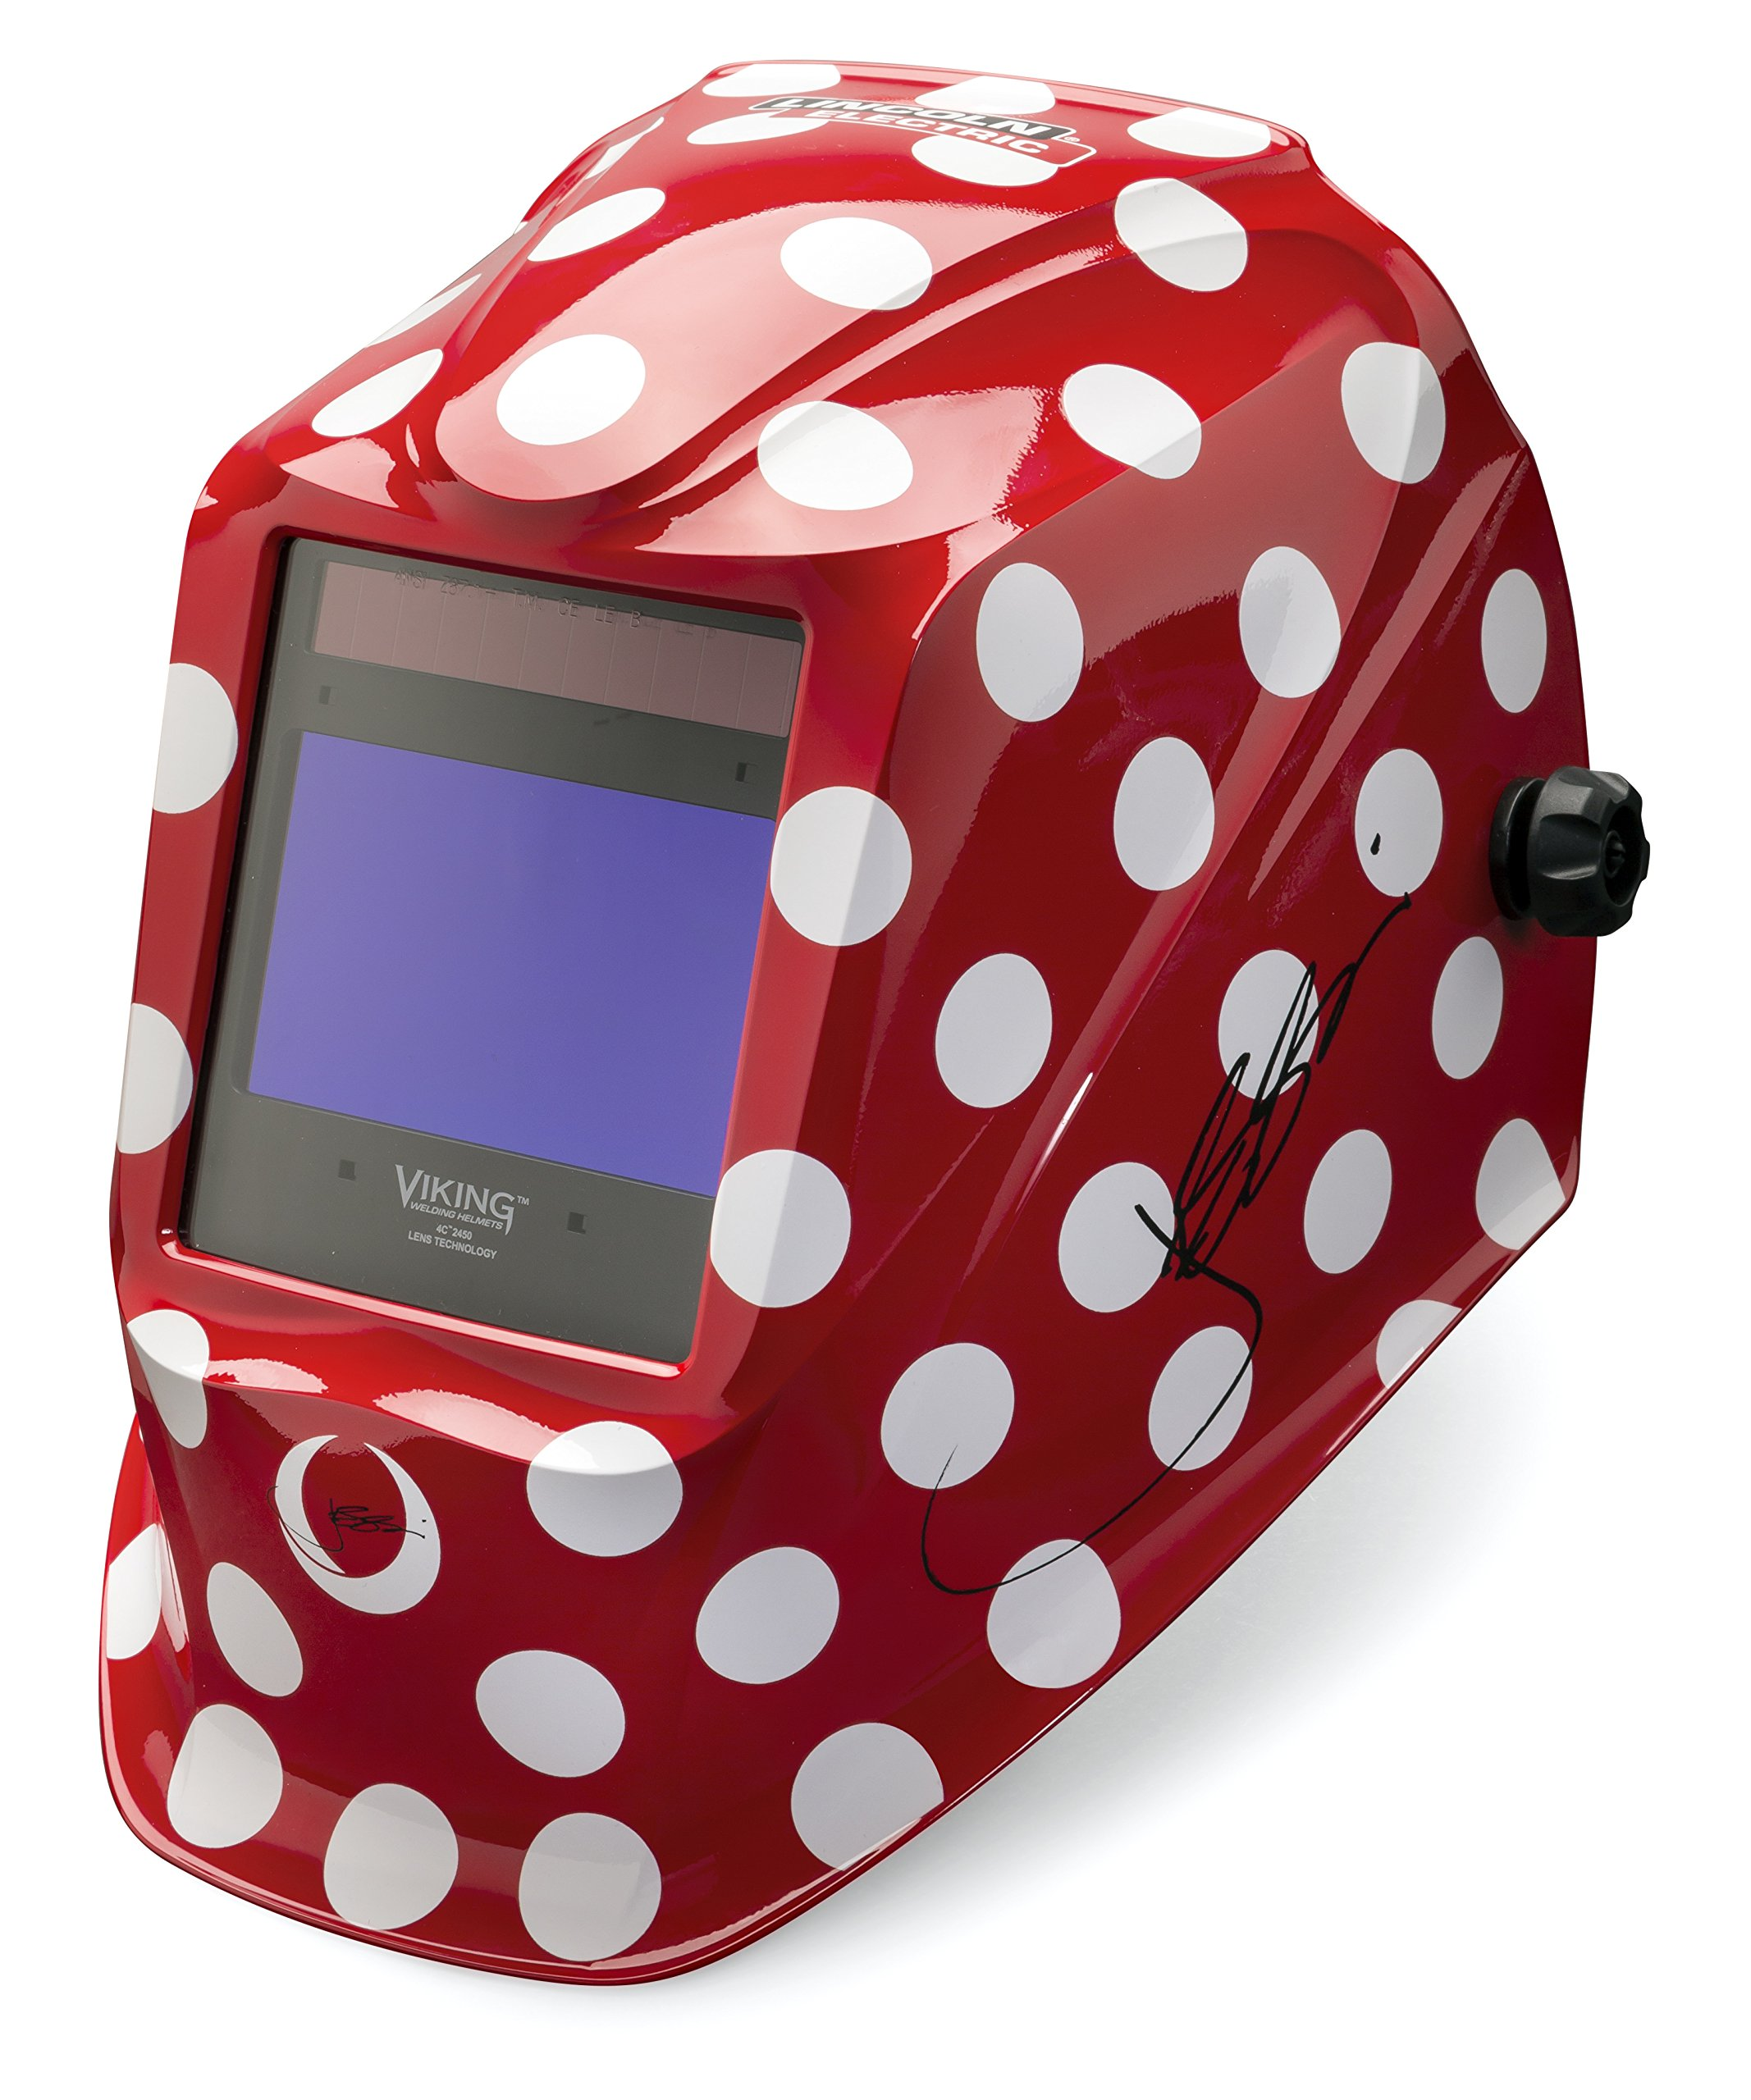 Lincoln Electric VIKING 2450 Jessi the Welder Welding Helmet with 4C Lens Technology - K4437-3 by Lincoln Electric